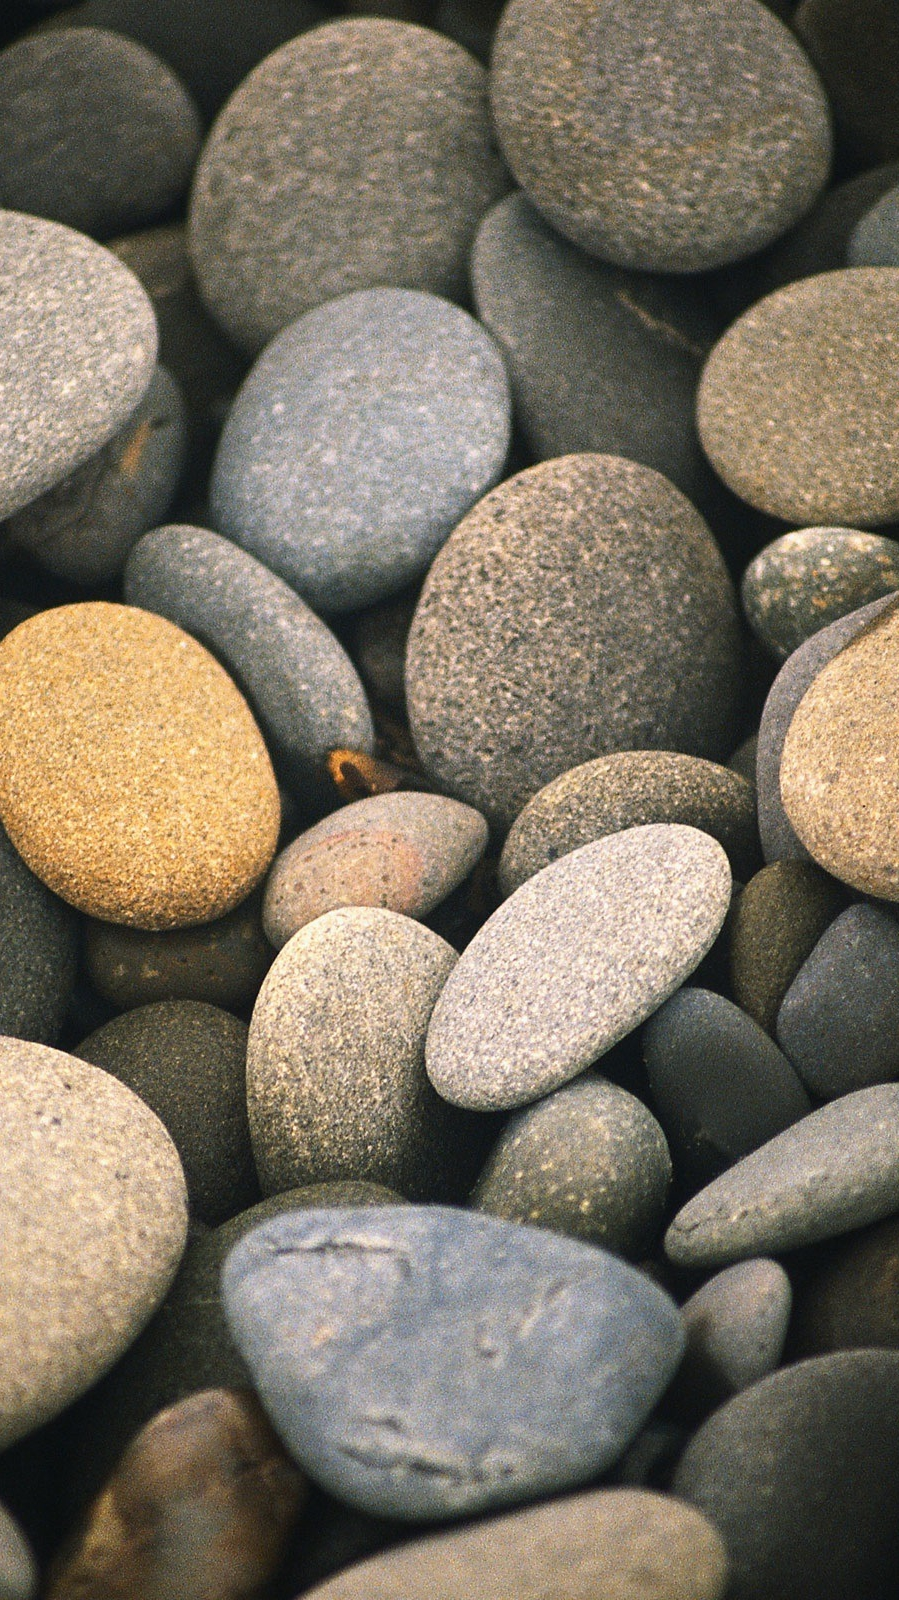 Minimalist Iphone Wallpaper Quotes Minimalistic Nature Pebbles Iphone Wallpaper Iphone